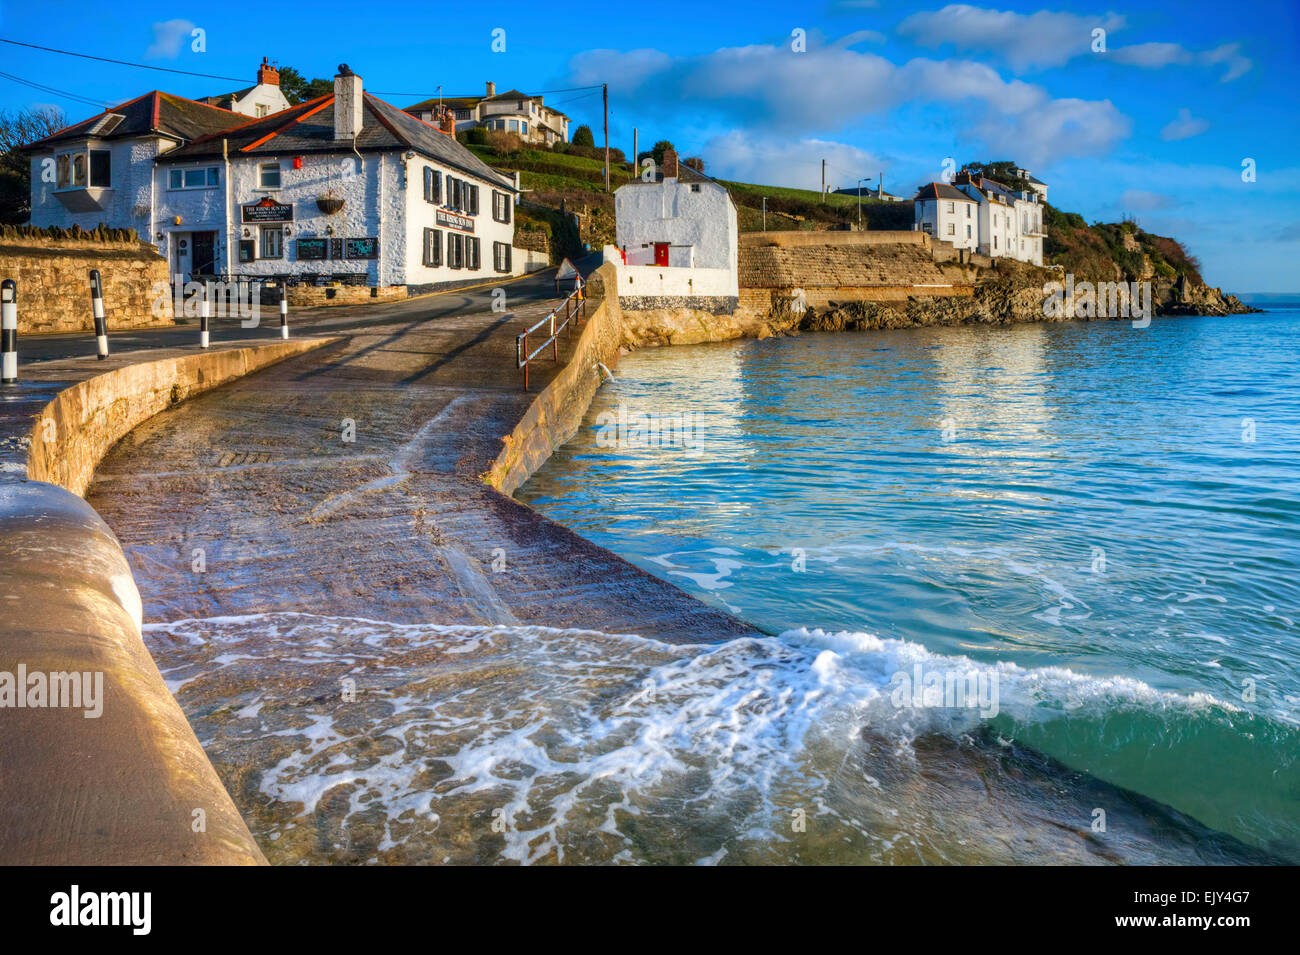 The slipway at Portmellon near Mevagissey in Cornwall, with The Rising Sun Inn in the distance. - Stock Image